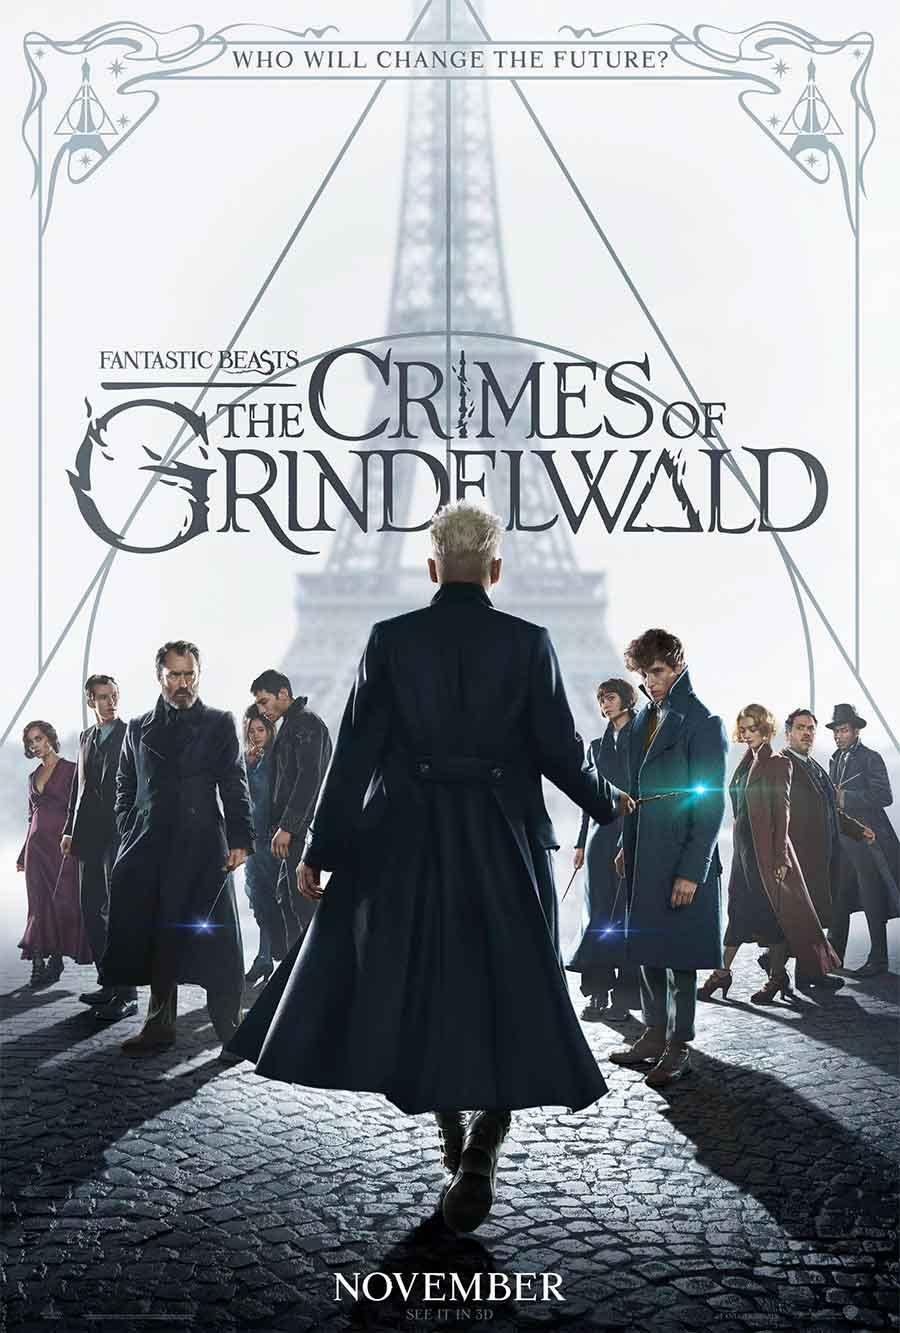 Poster for Fantastic Beasts: The Crimes of Grindelwald (LUX)